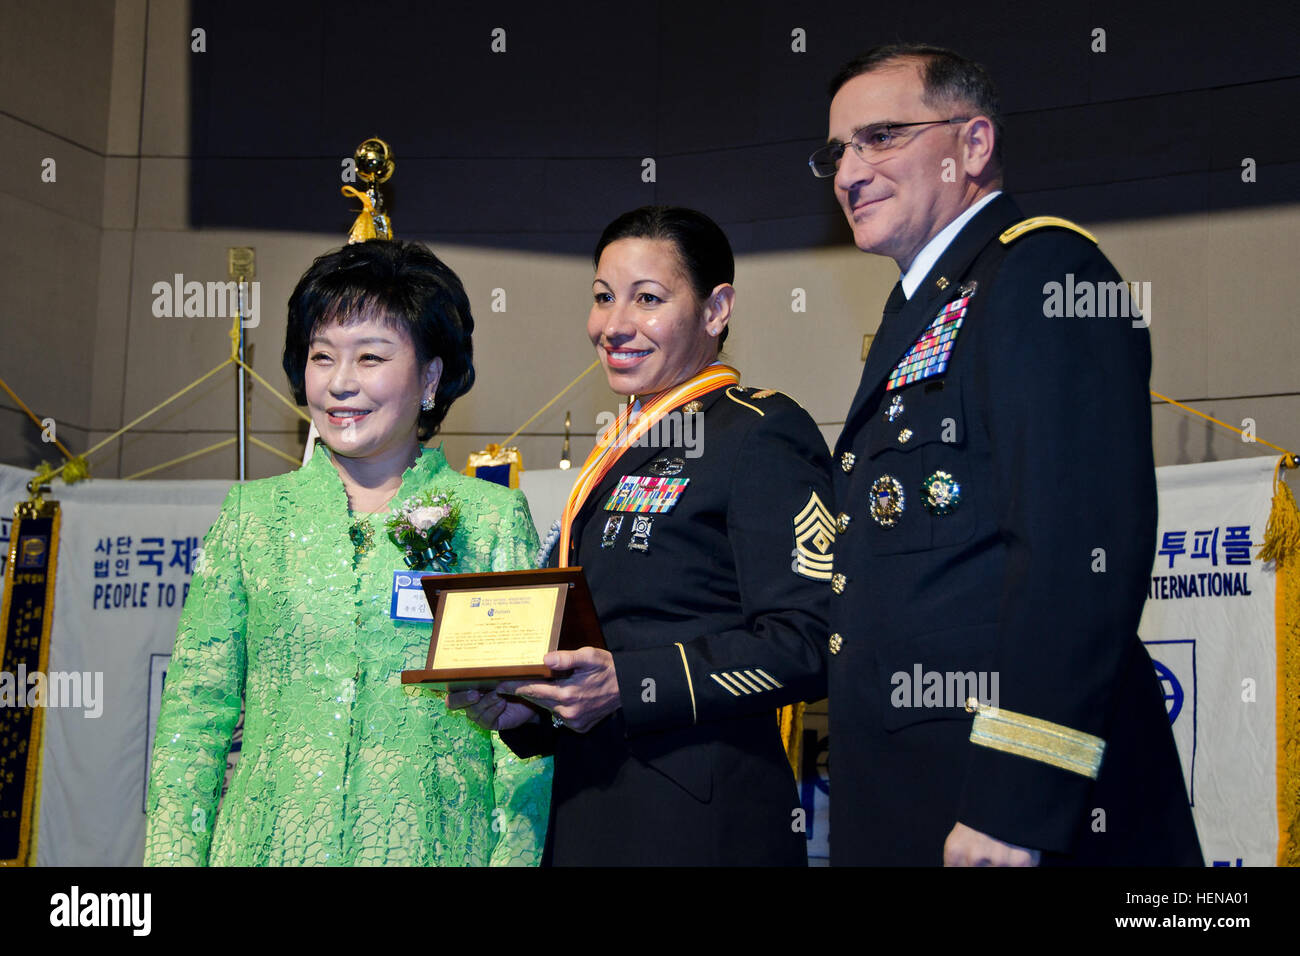 U.S. Army First Sgt. Donna Swan, assigned to Headquarters and Headquarters Company, is recognized for her community - Stock Image